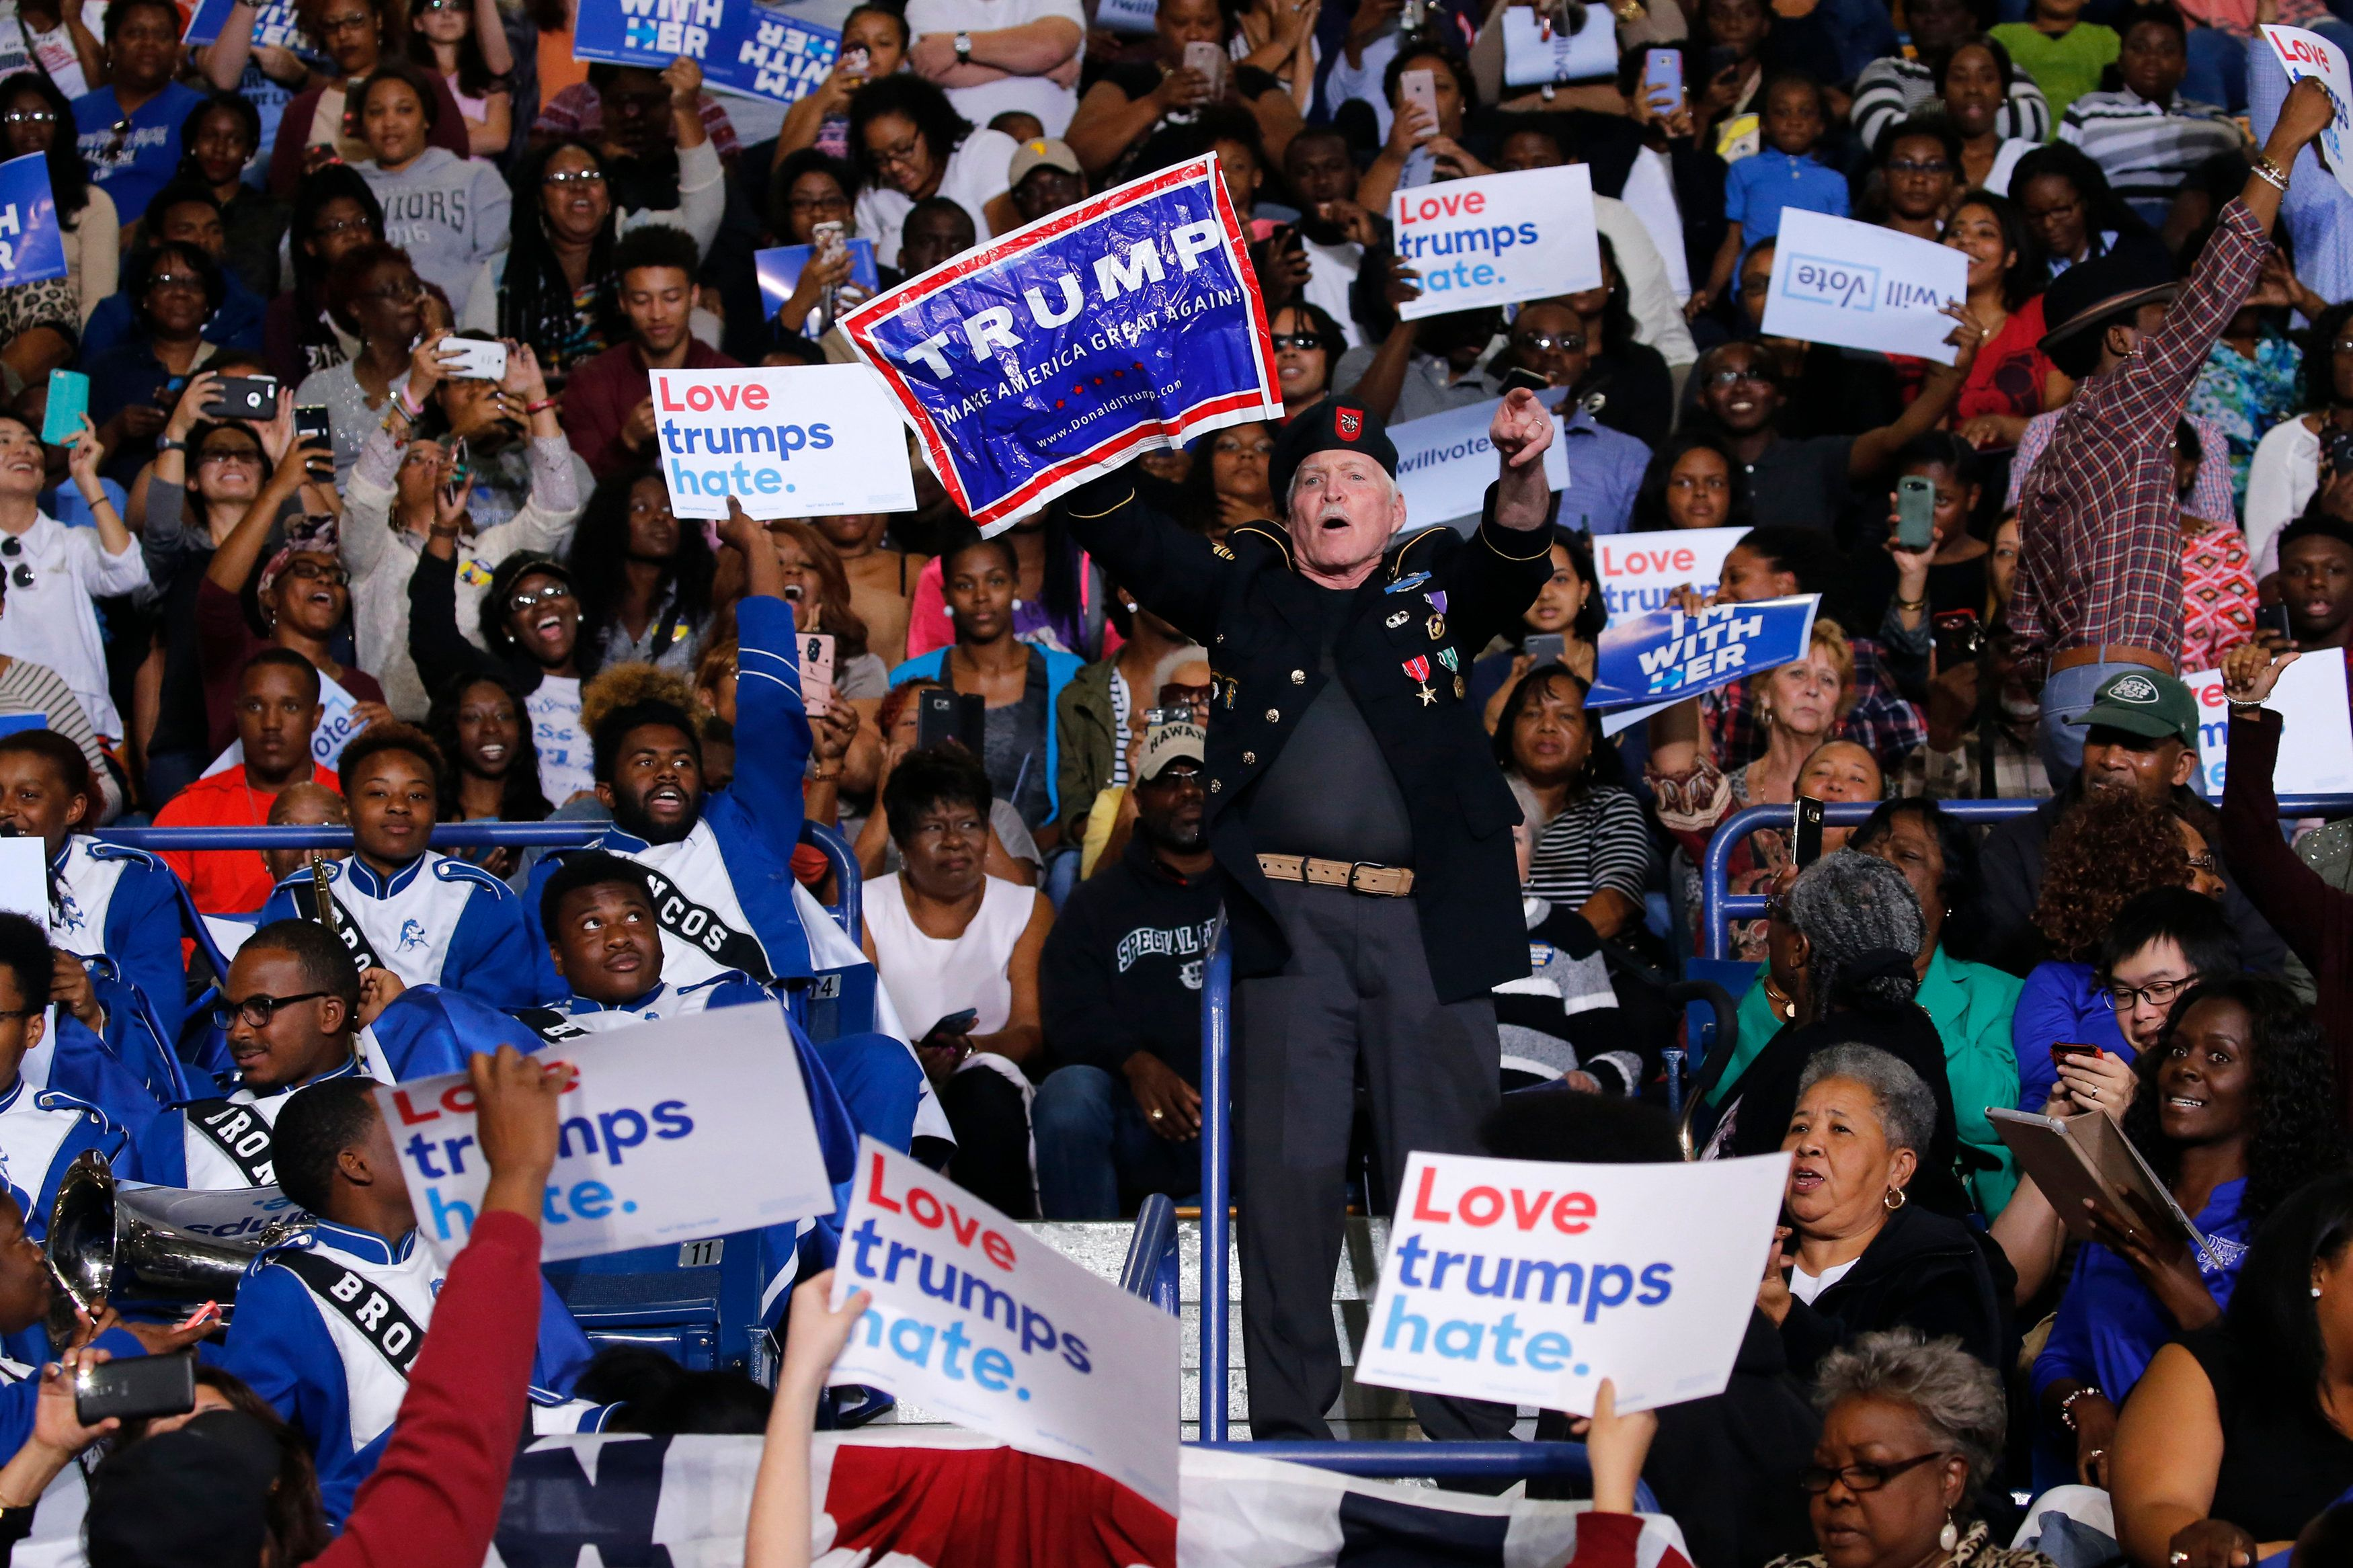 A Donald Trump supporter disruptedremarks by President Barack Obama at a rally Friday for Hillary Clintonin Fayet